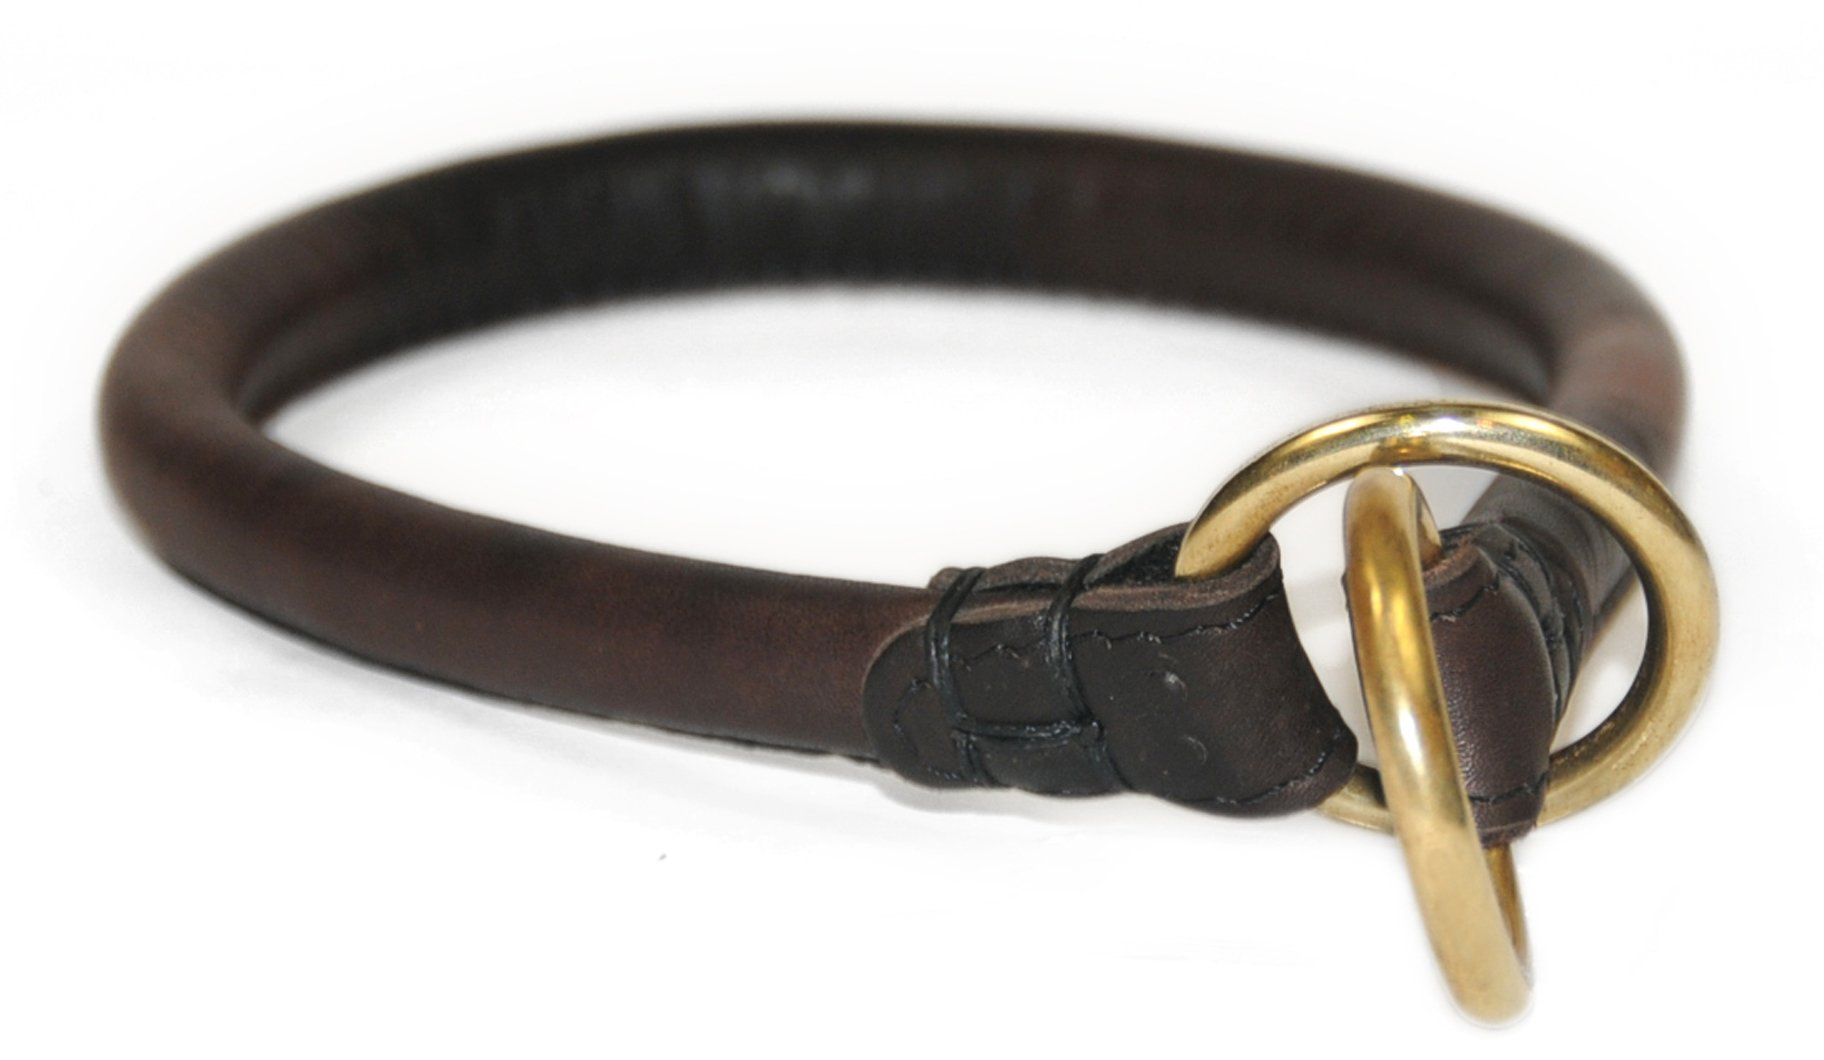 Dean and Tyler ''DESPERADO'', Rounded Dog Choke Collar with Brass Hardware - Brown - Size 32-Inch by 1/2-Inch Diameter - Fits Neck 30-Inch to 32-Inch by Dean & Tyler (Image #1)